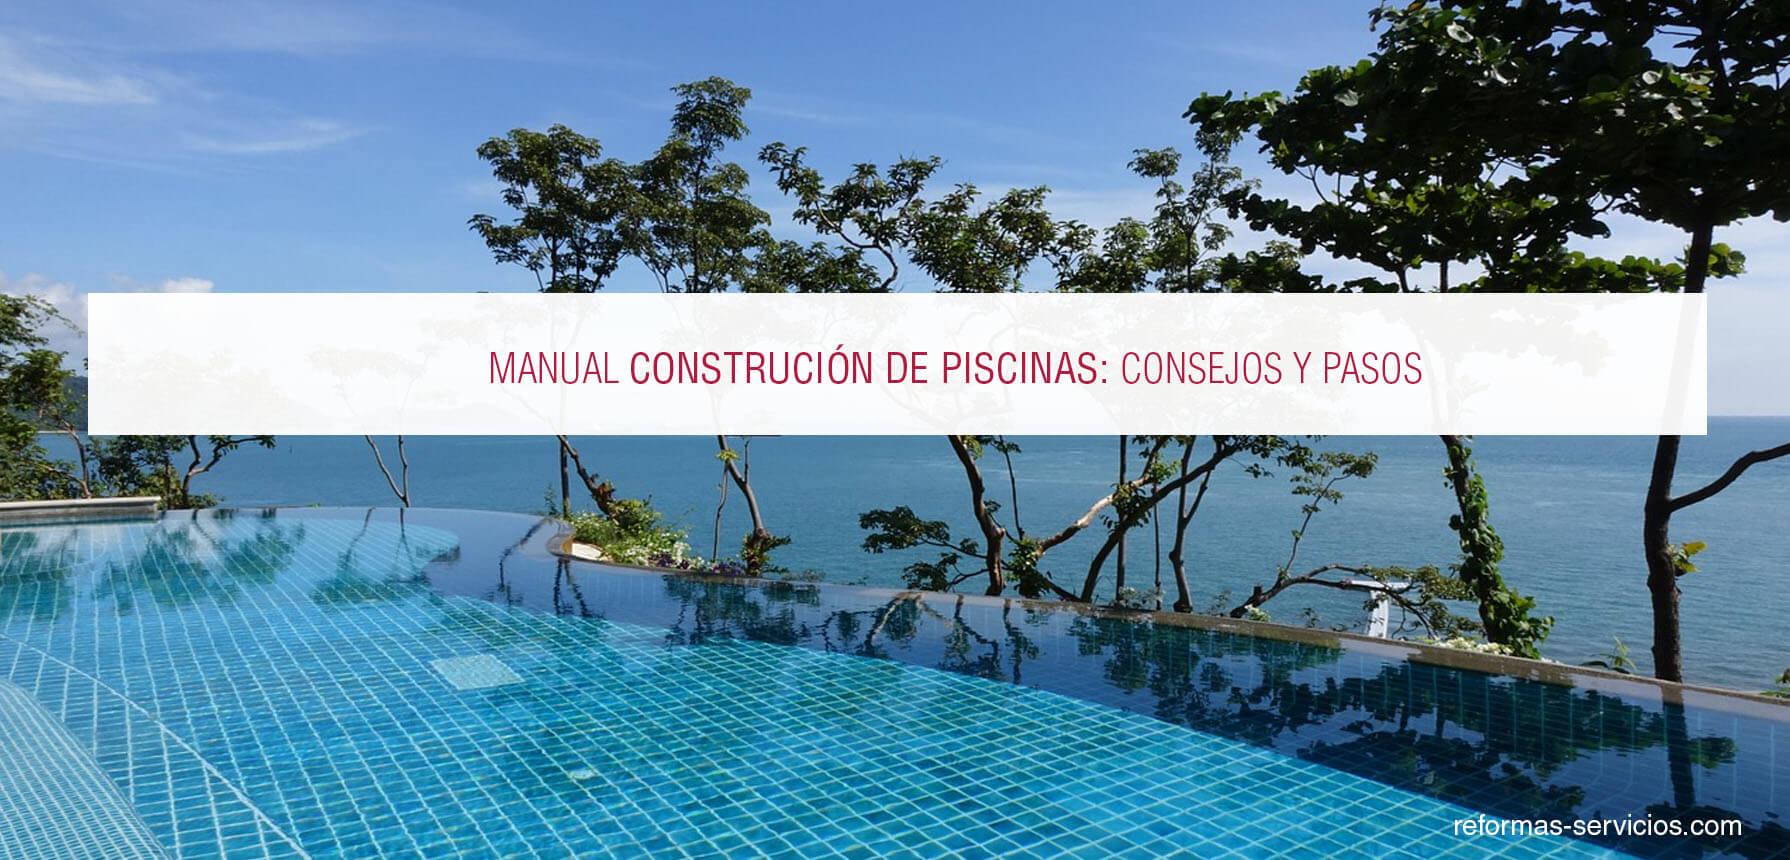 Construcci n de piscinas for Manual de construccion de piscinas pdf